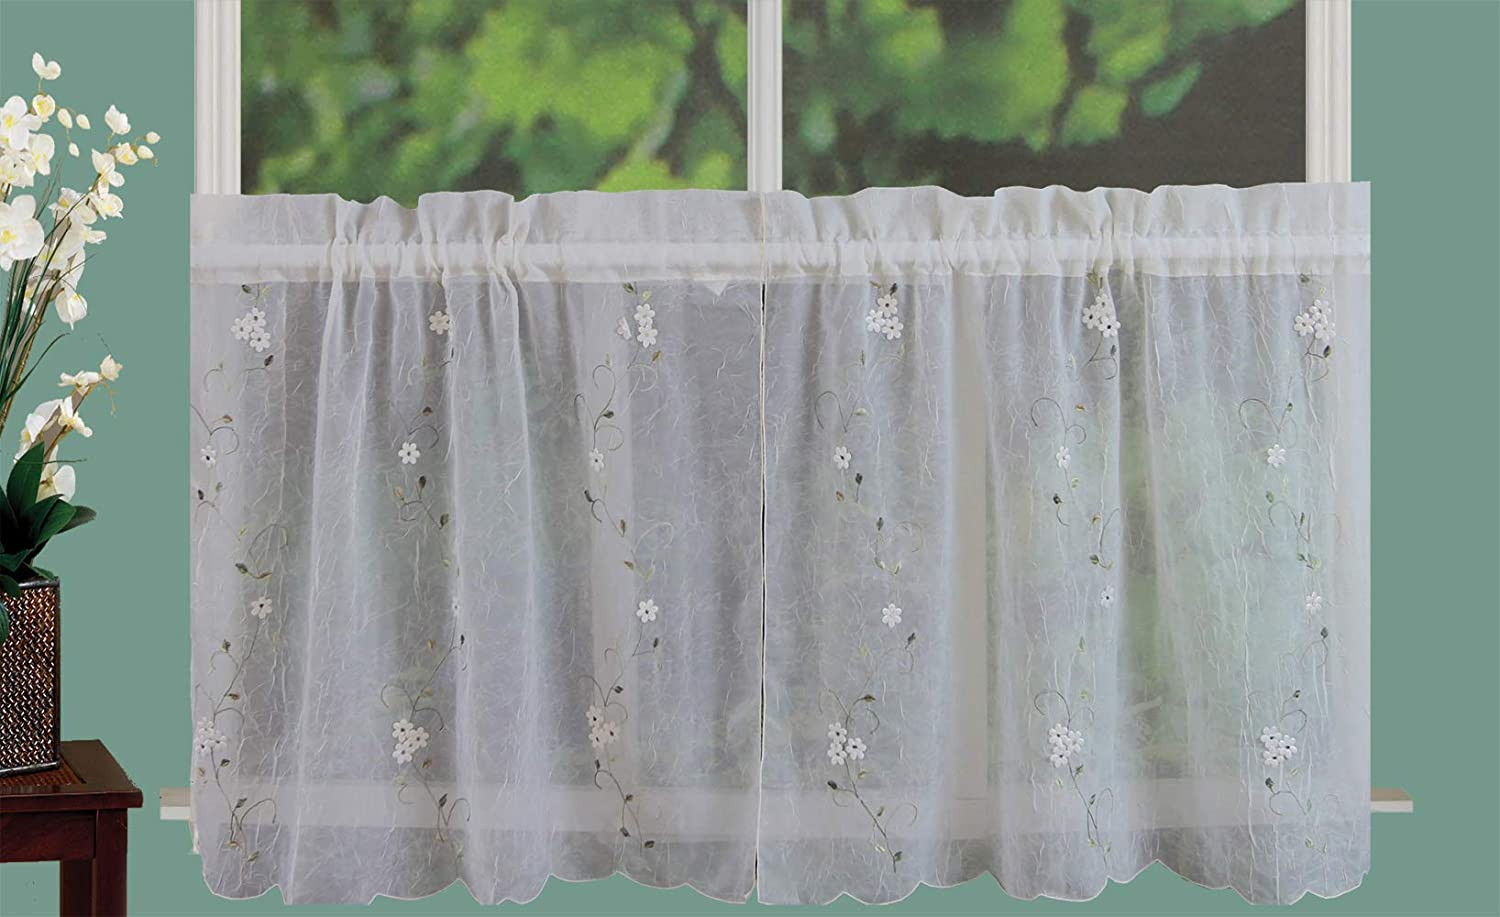 Creative Linens Daisy Embroidery Kitchen Tiers Curtain L Colorado Springs Mall 24